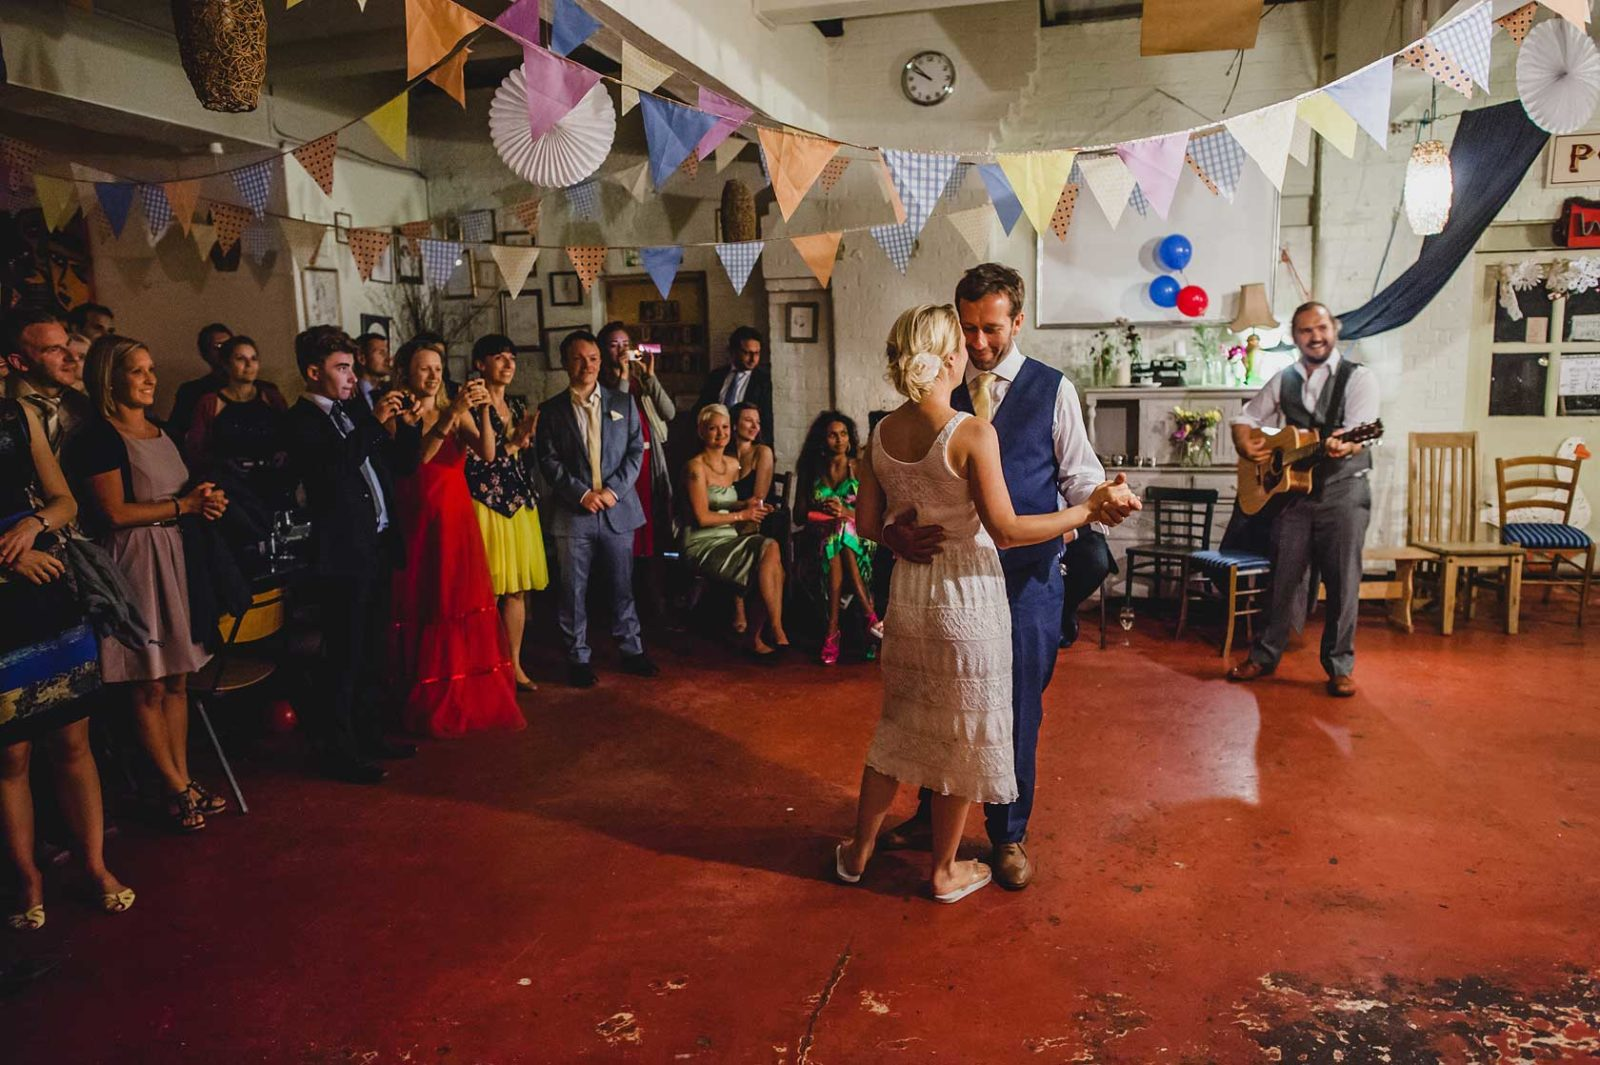 unusual-wedding-venue-First dance at Hackney City Farm